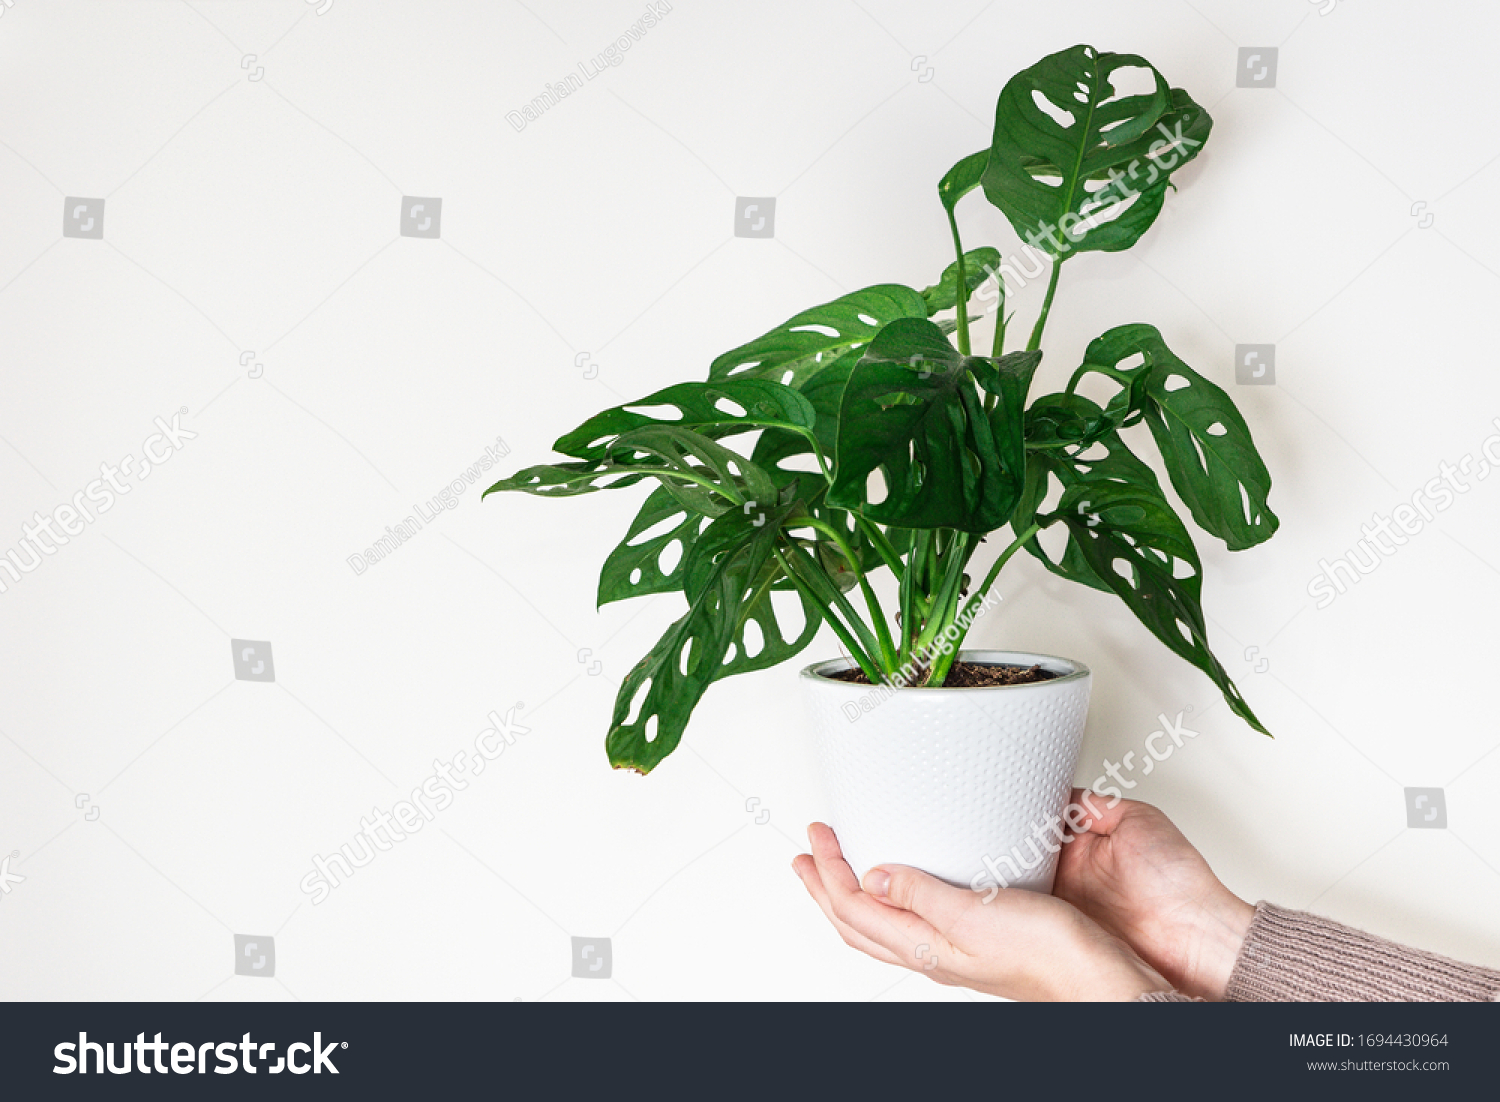 Hands holding monstera monkey mask plant (Monstera Obliqua or Monstera adansonii) in flower pot on white background. Concept of urban jungle, growing plants at home #1694430964